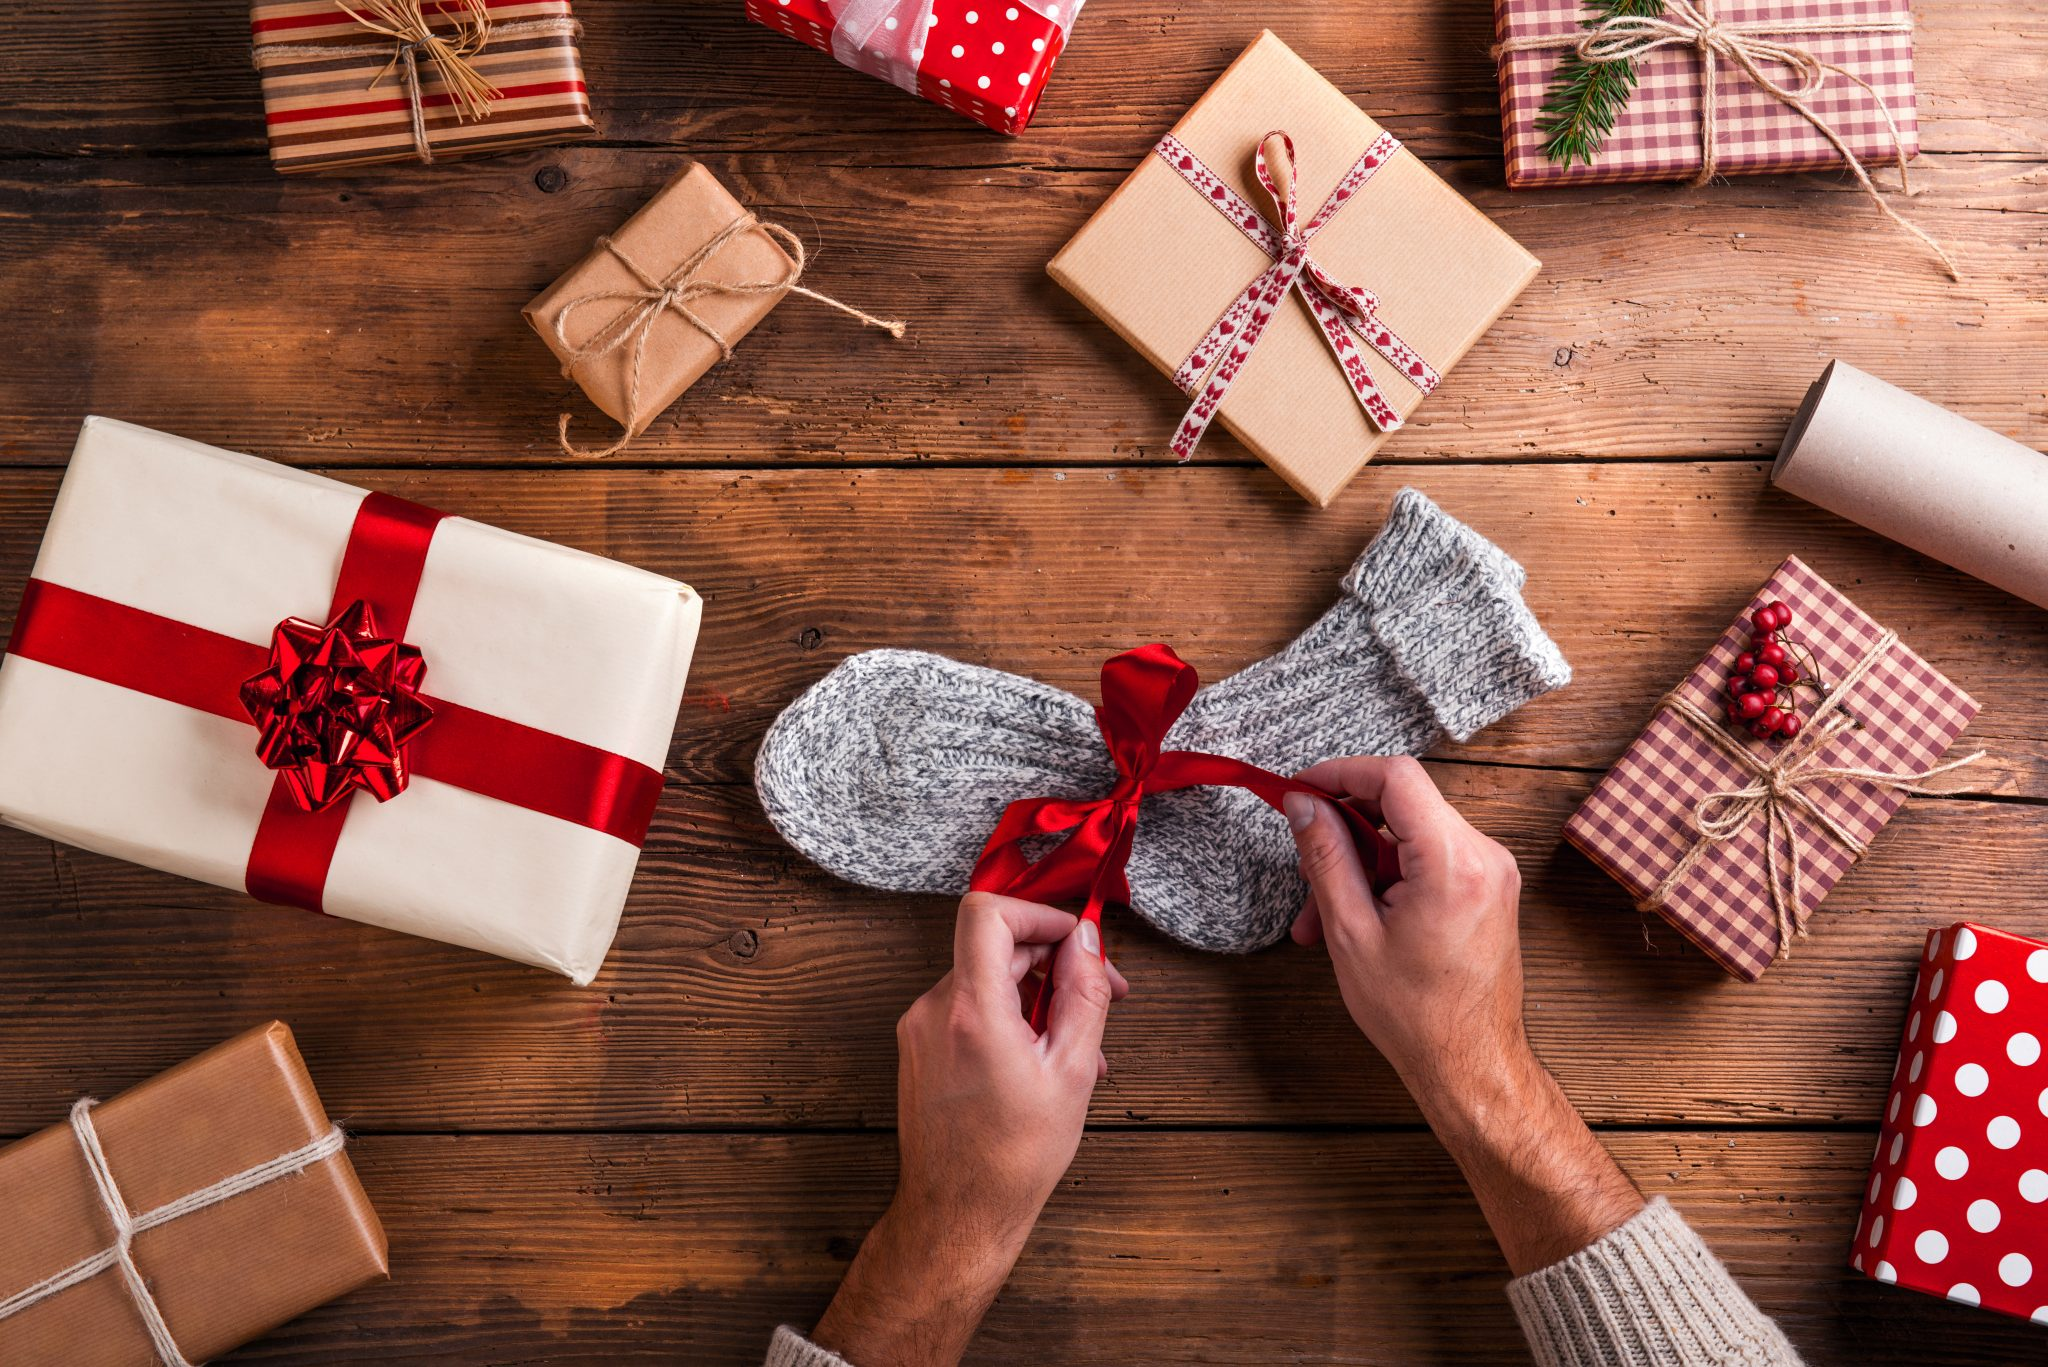 fuzzy sock gift ideas